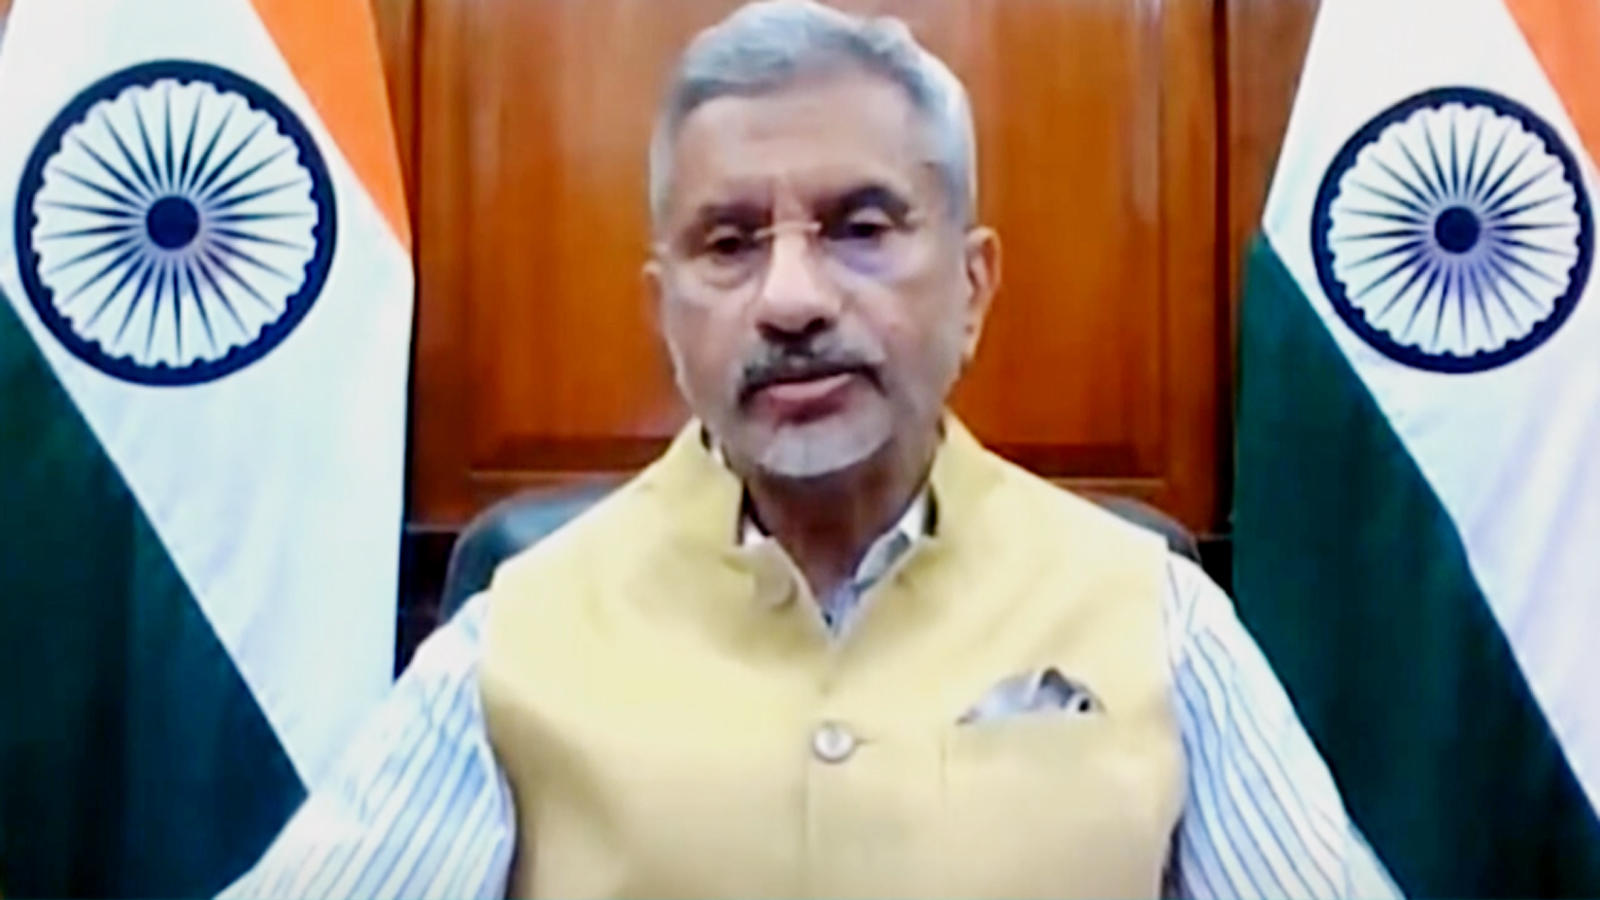 india-china-border-issue-disengagement-de-escalation-has-commenced-says-external-affairs-minister-s-jaishankar